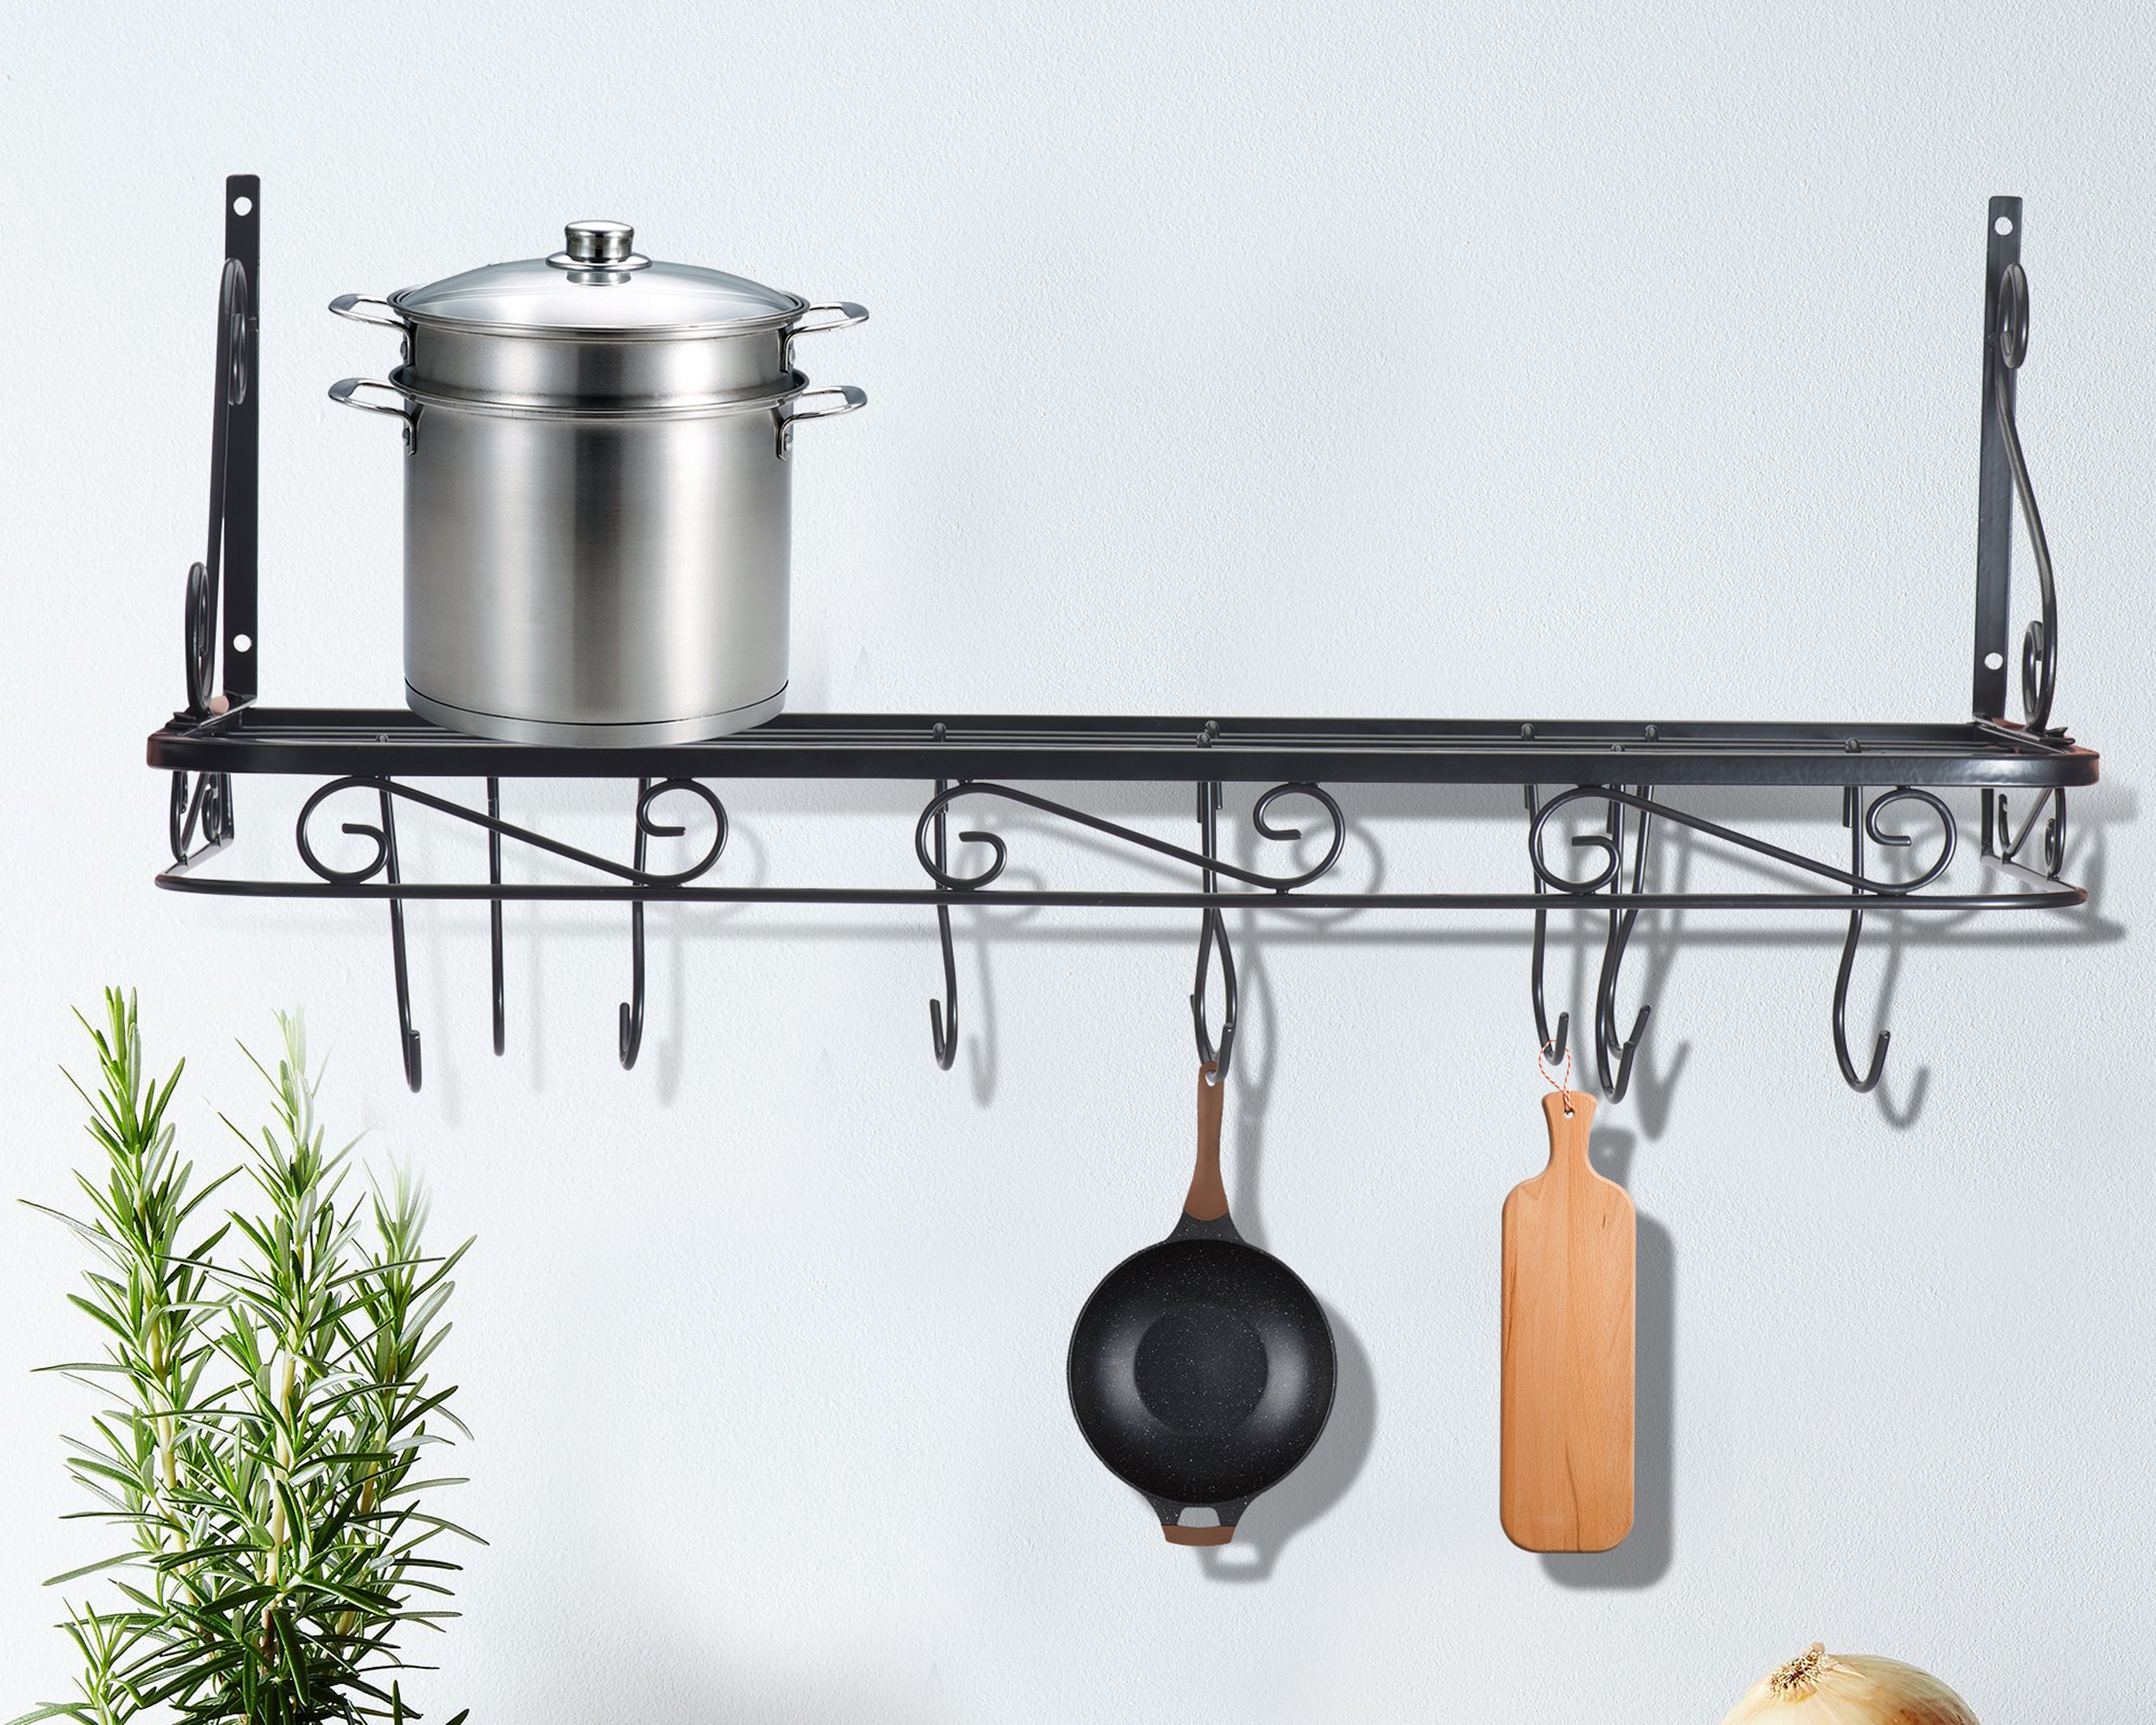 racks saucepan decoration lights pans with holder pot rack large pan grid cooking shelf cover hanger copper kitchen wall hooks for black and pots mounted hanging bakers